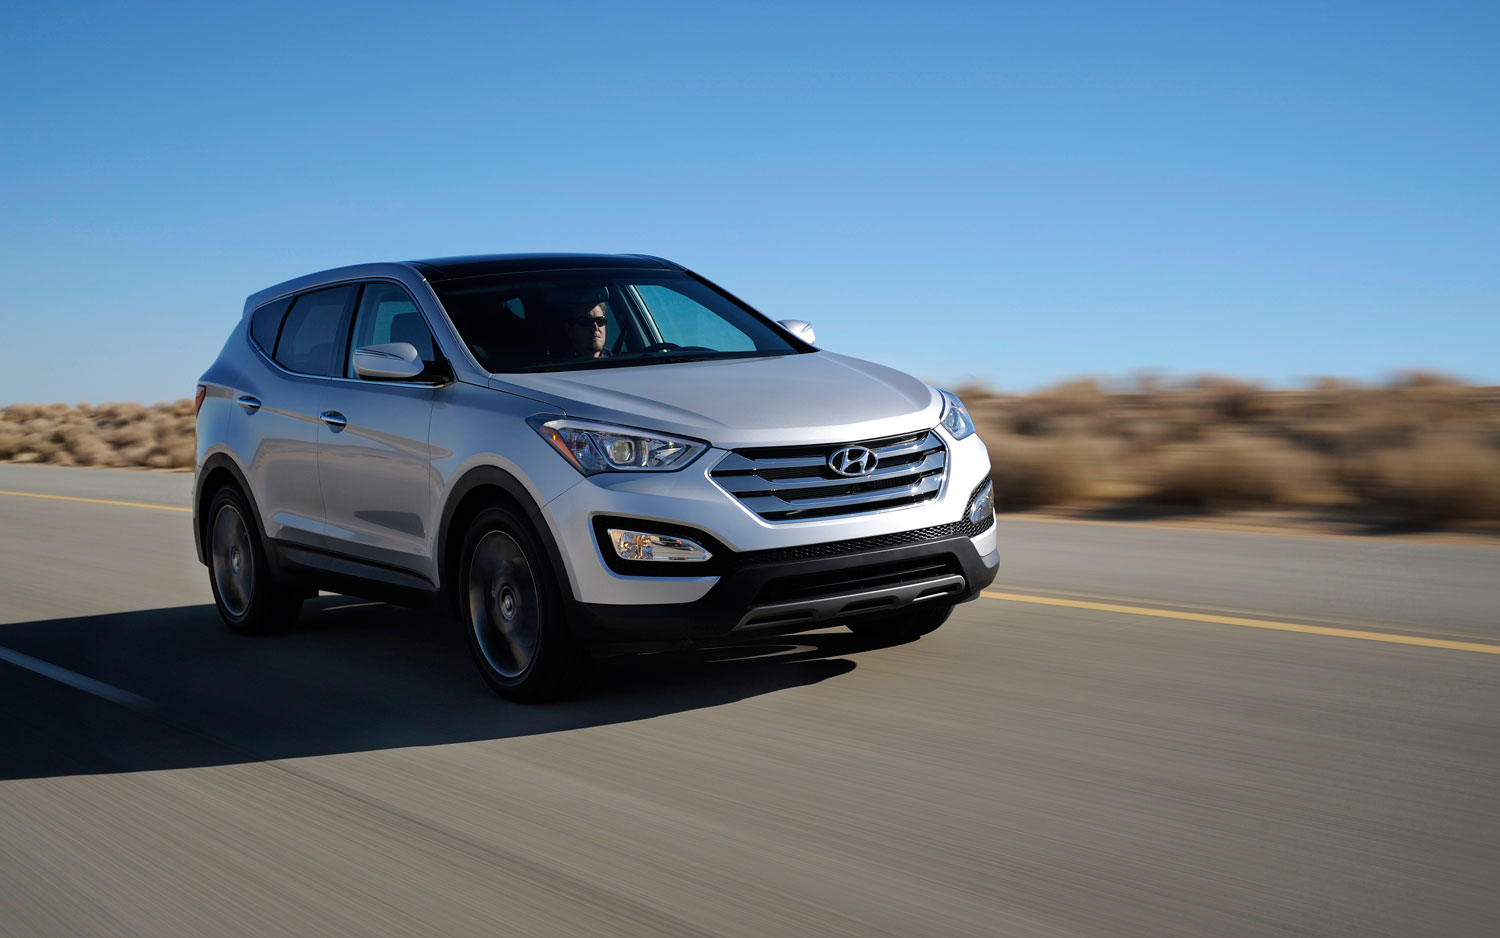 2013 hyundai santa fe sport new cars reviews. Black Bedroom Furniture Sets. Home Design Ideas